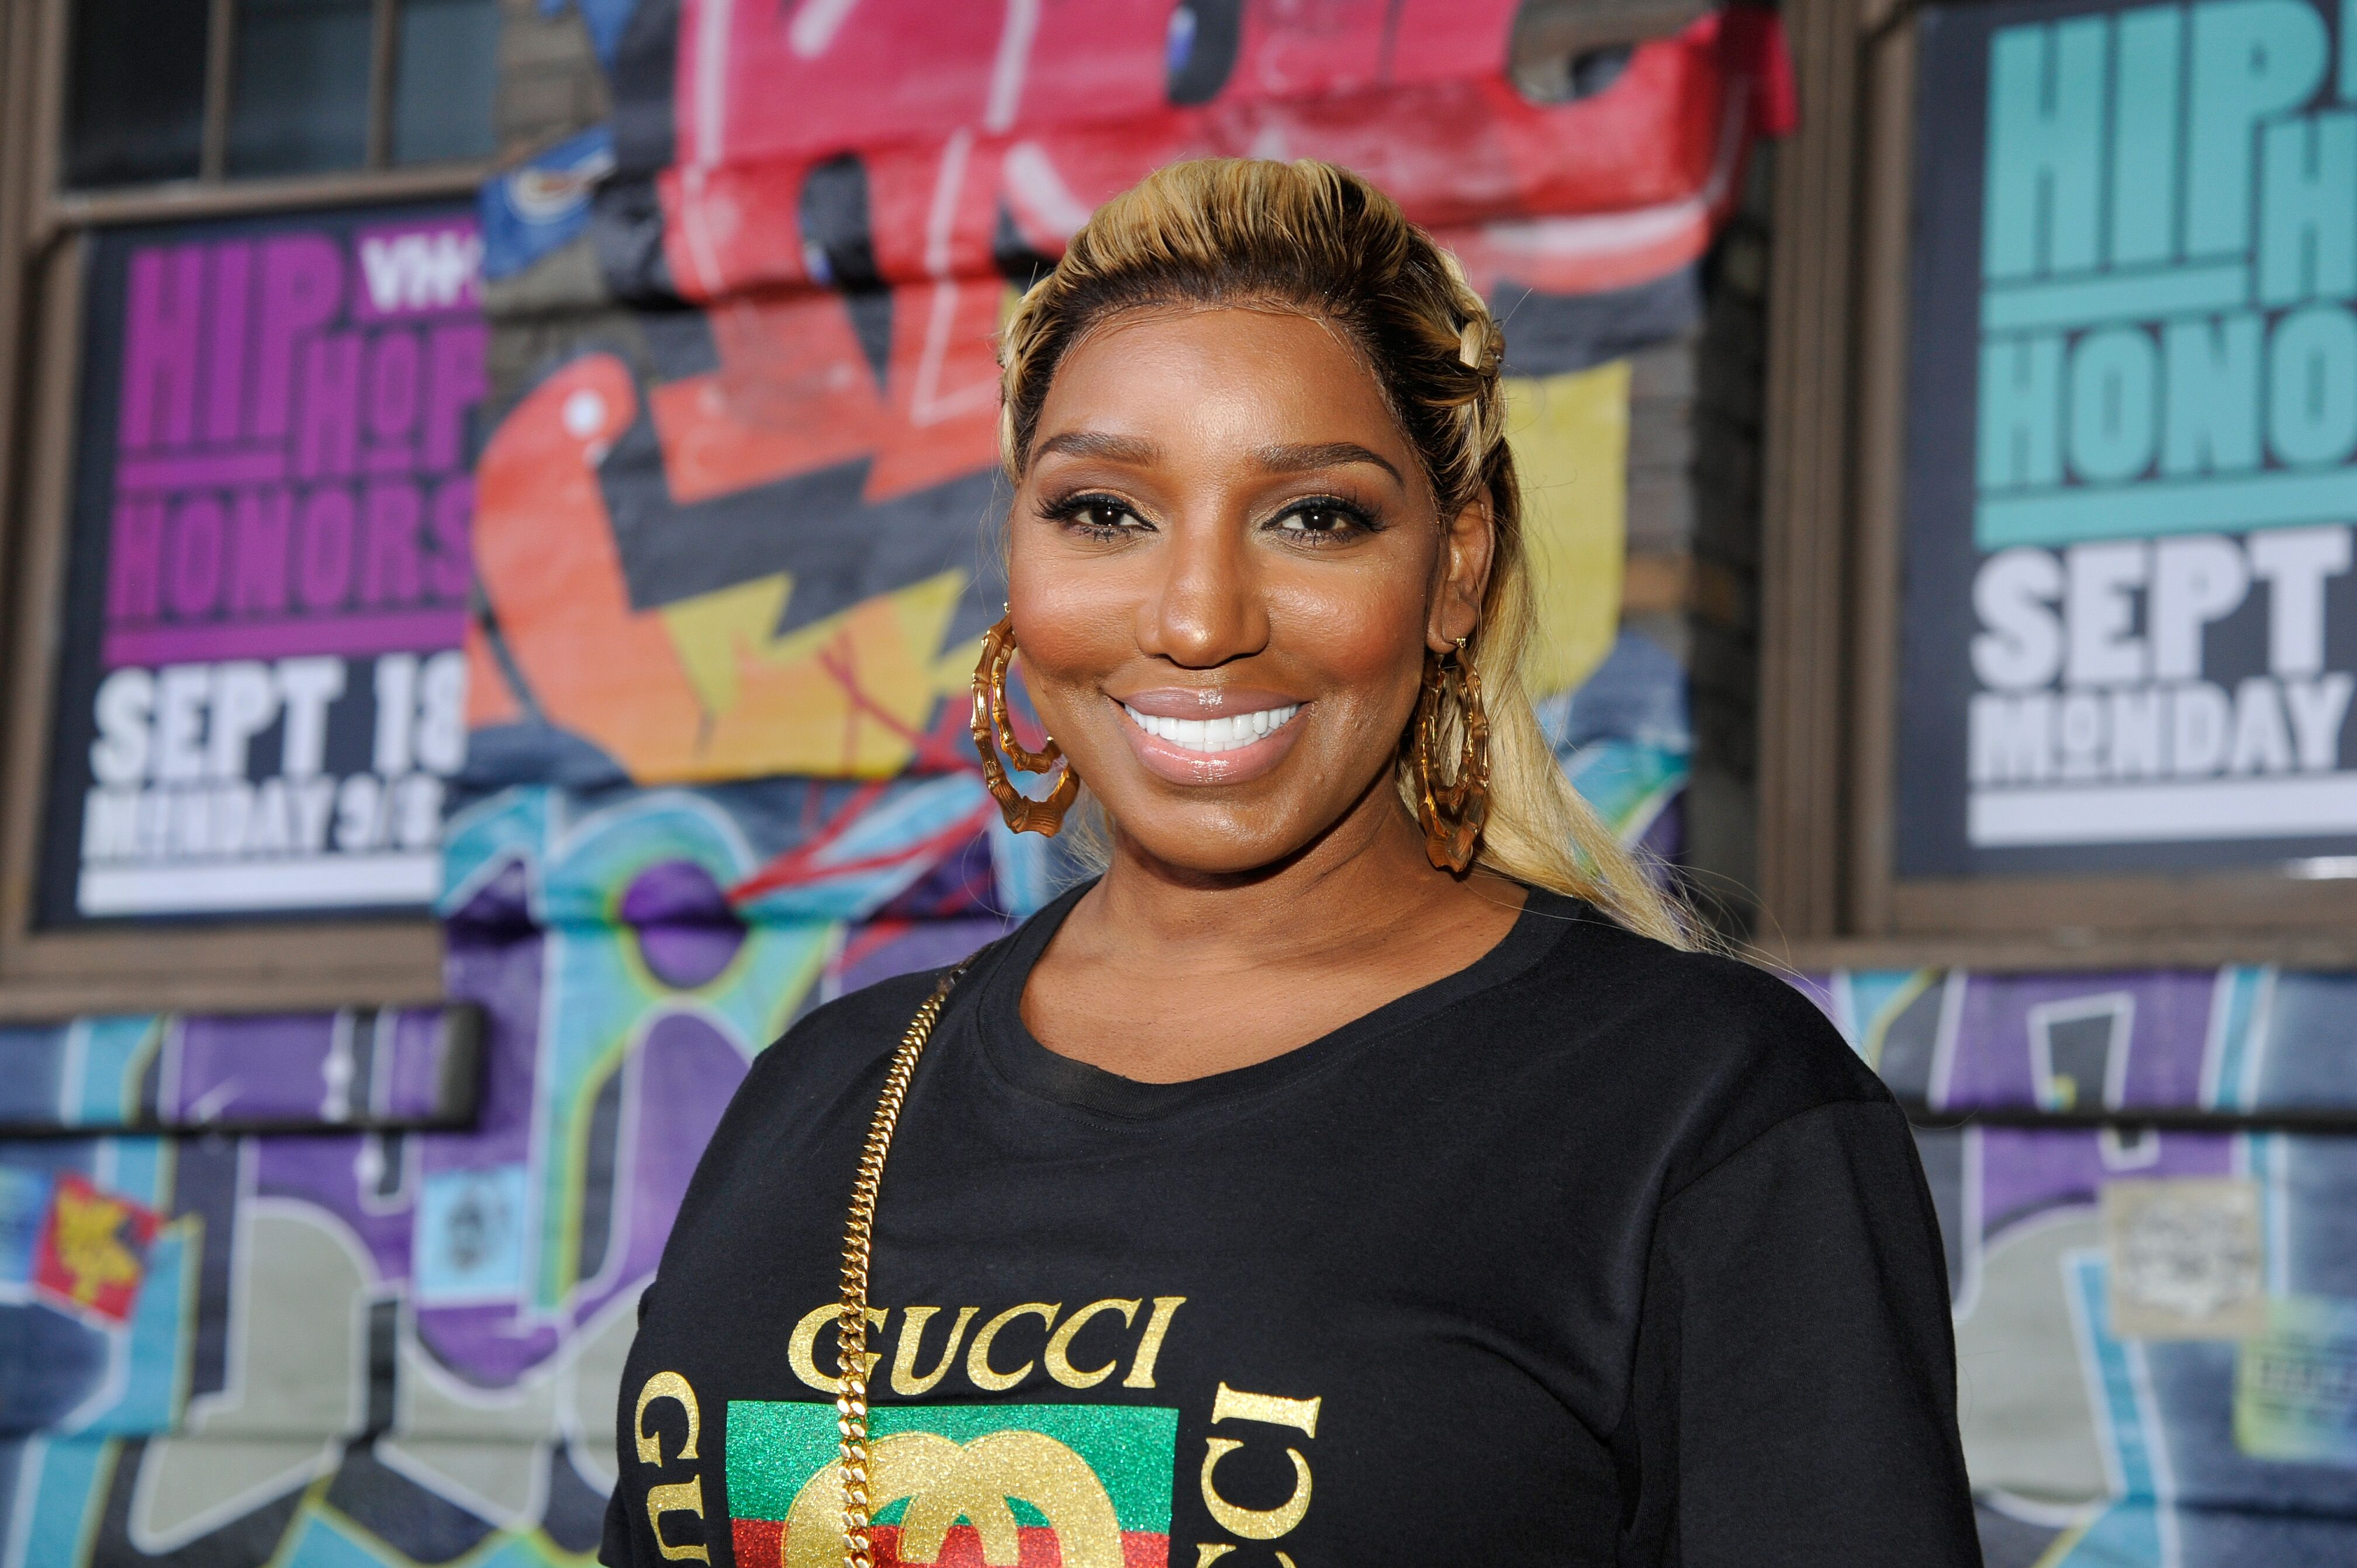 NeNe Leakes at the Hip Hop Honors Awards in Los Angeles/ Source: Getty Images